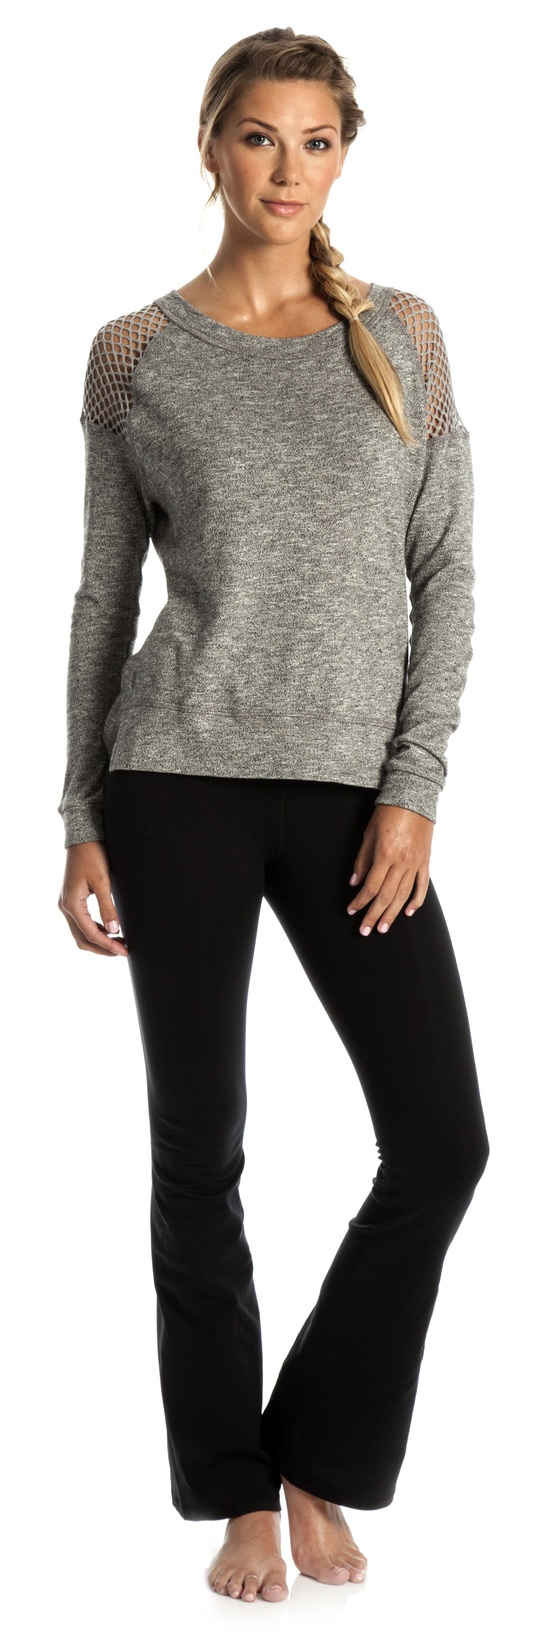 Summer Nights Long Sleeve + Solar Flare Leggings #fashion #fitness